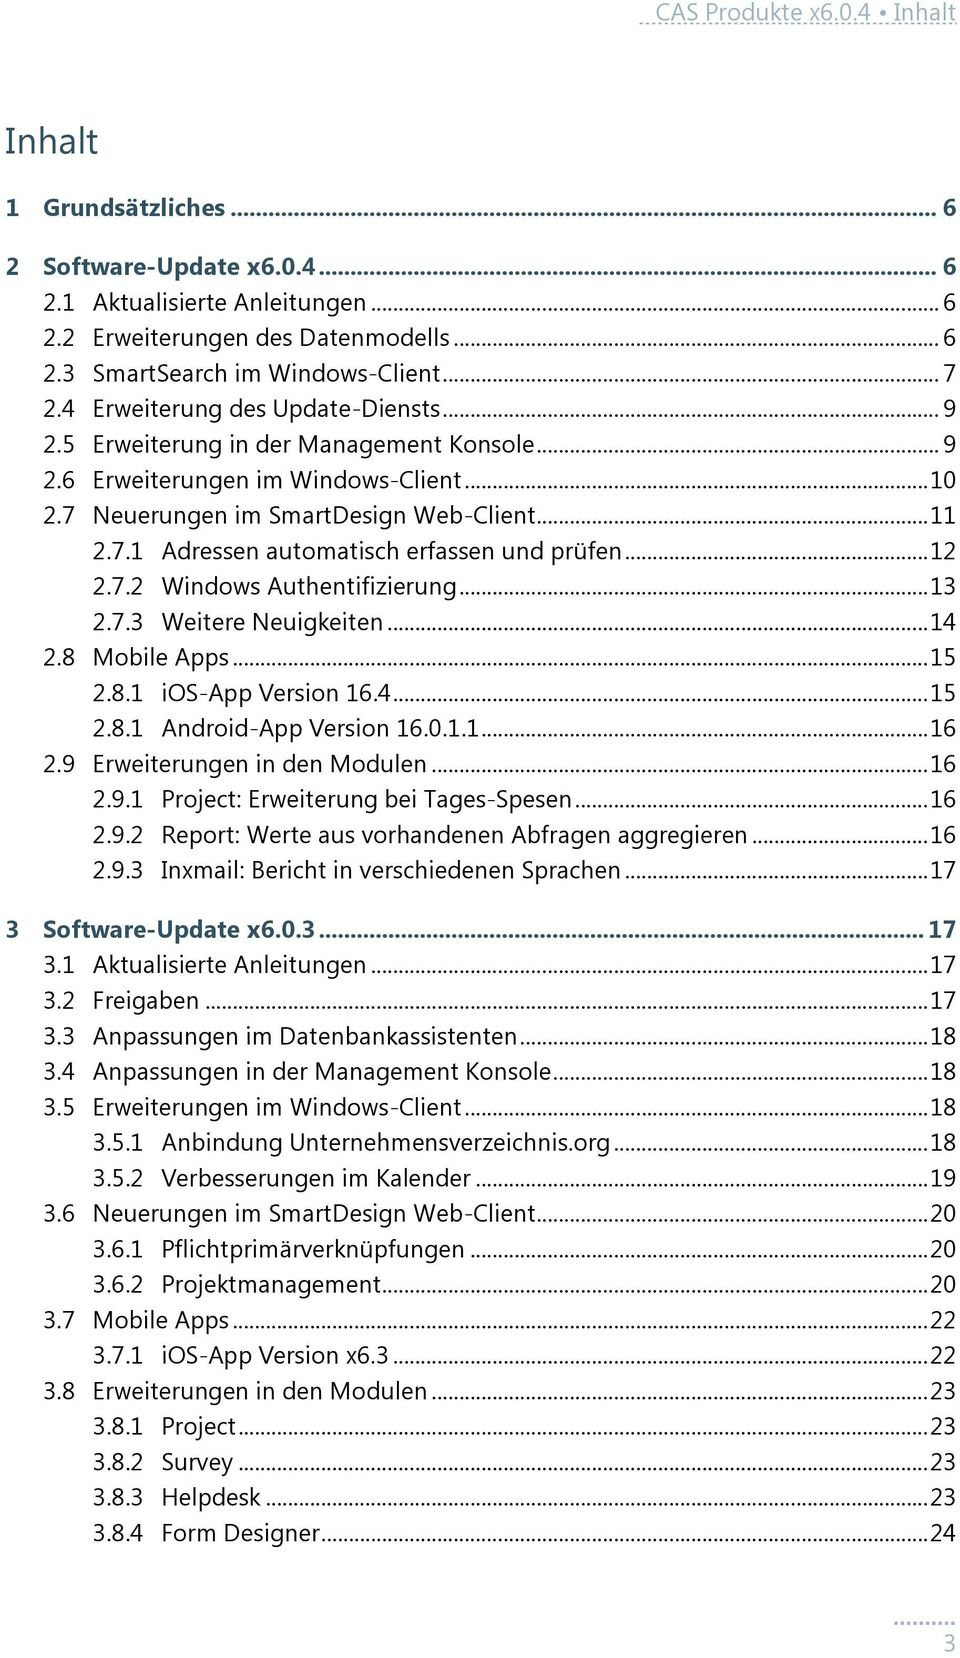 .. 12 2.7.2 Windows Authentifizierung... 13 2.7.3 Weitere Neuigkeiten... 14 2.8 Mobile Apps... 15 2.8.1 ios-app Version 16.4... 15 2.8.1 Android-App Version 16.0.1.1... 16 2.